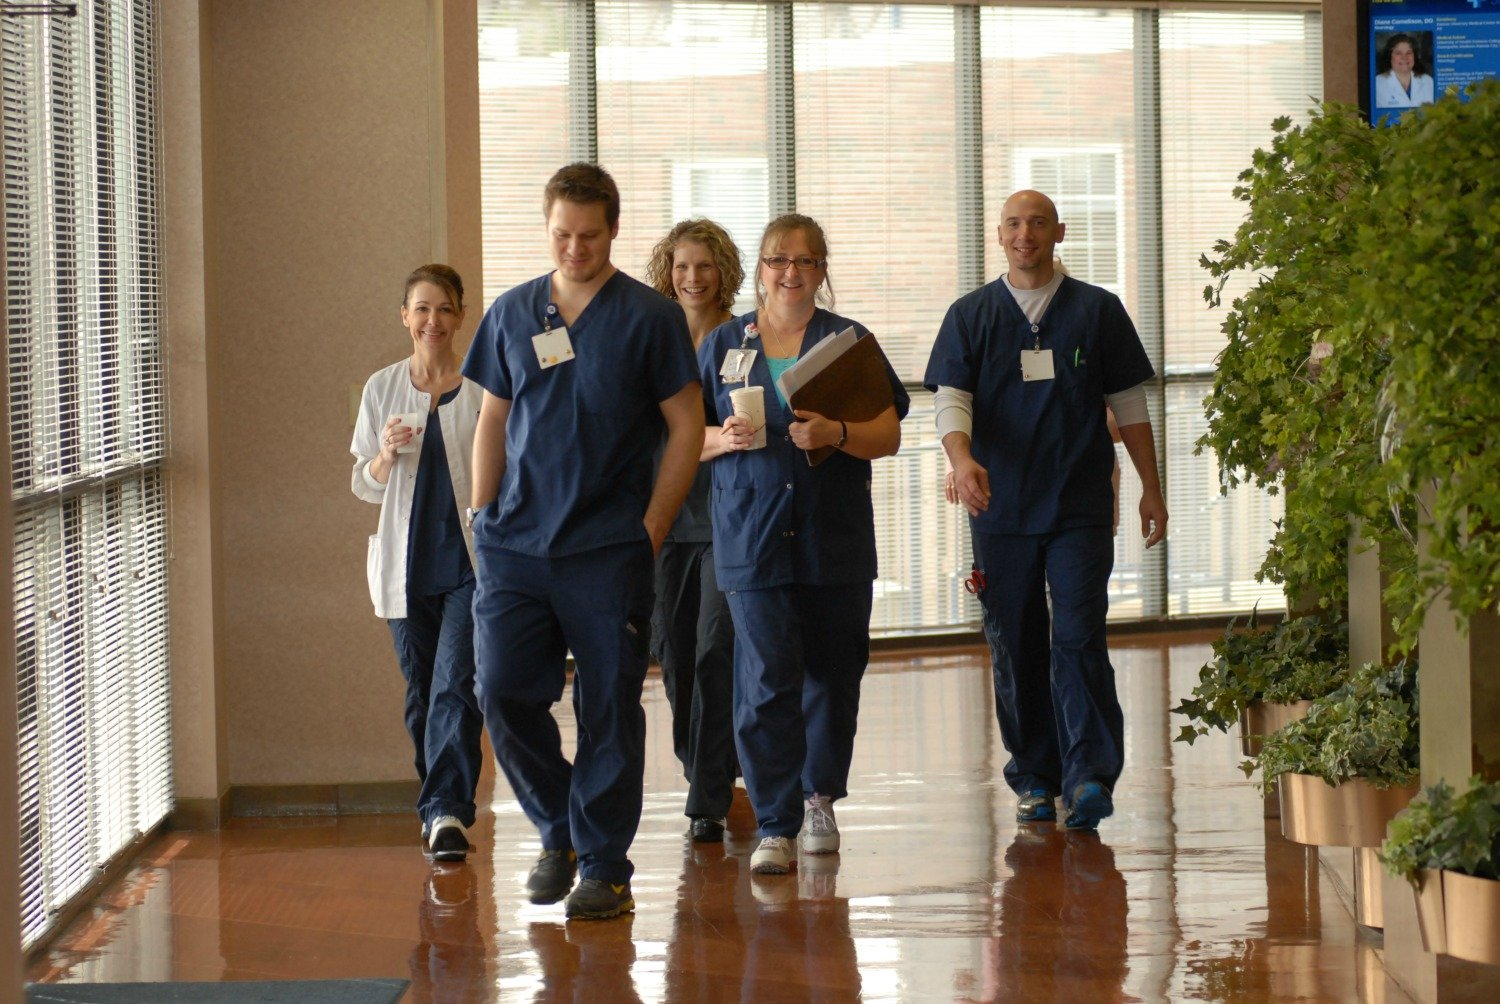 A group of employees walk down the hall.